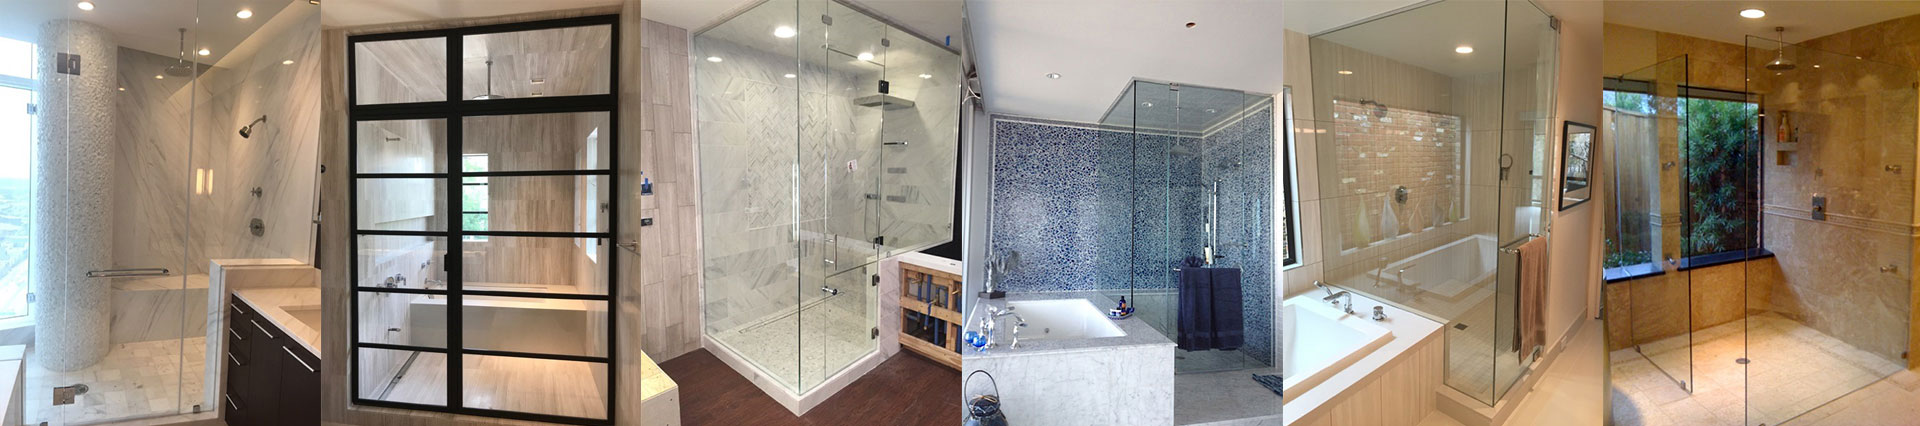 Shower Door Installation Dallas, TX | Custom Shower & Tub Enclosures